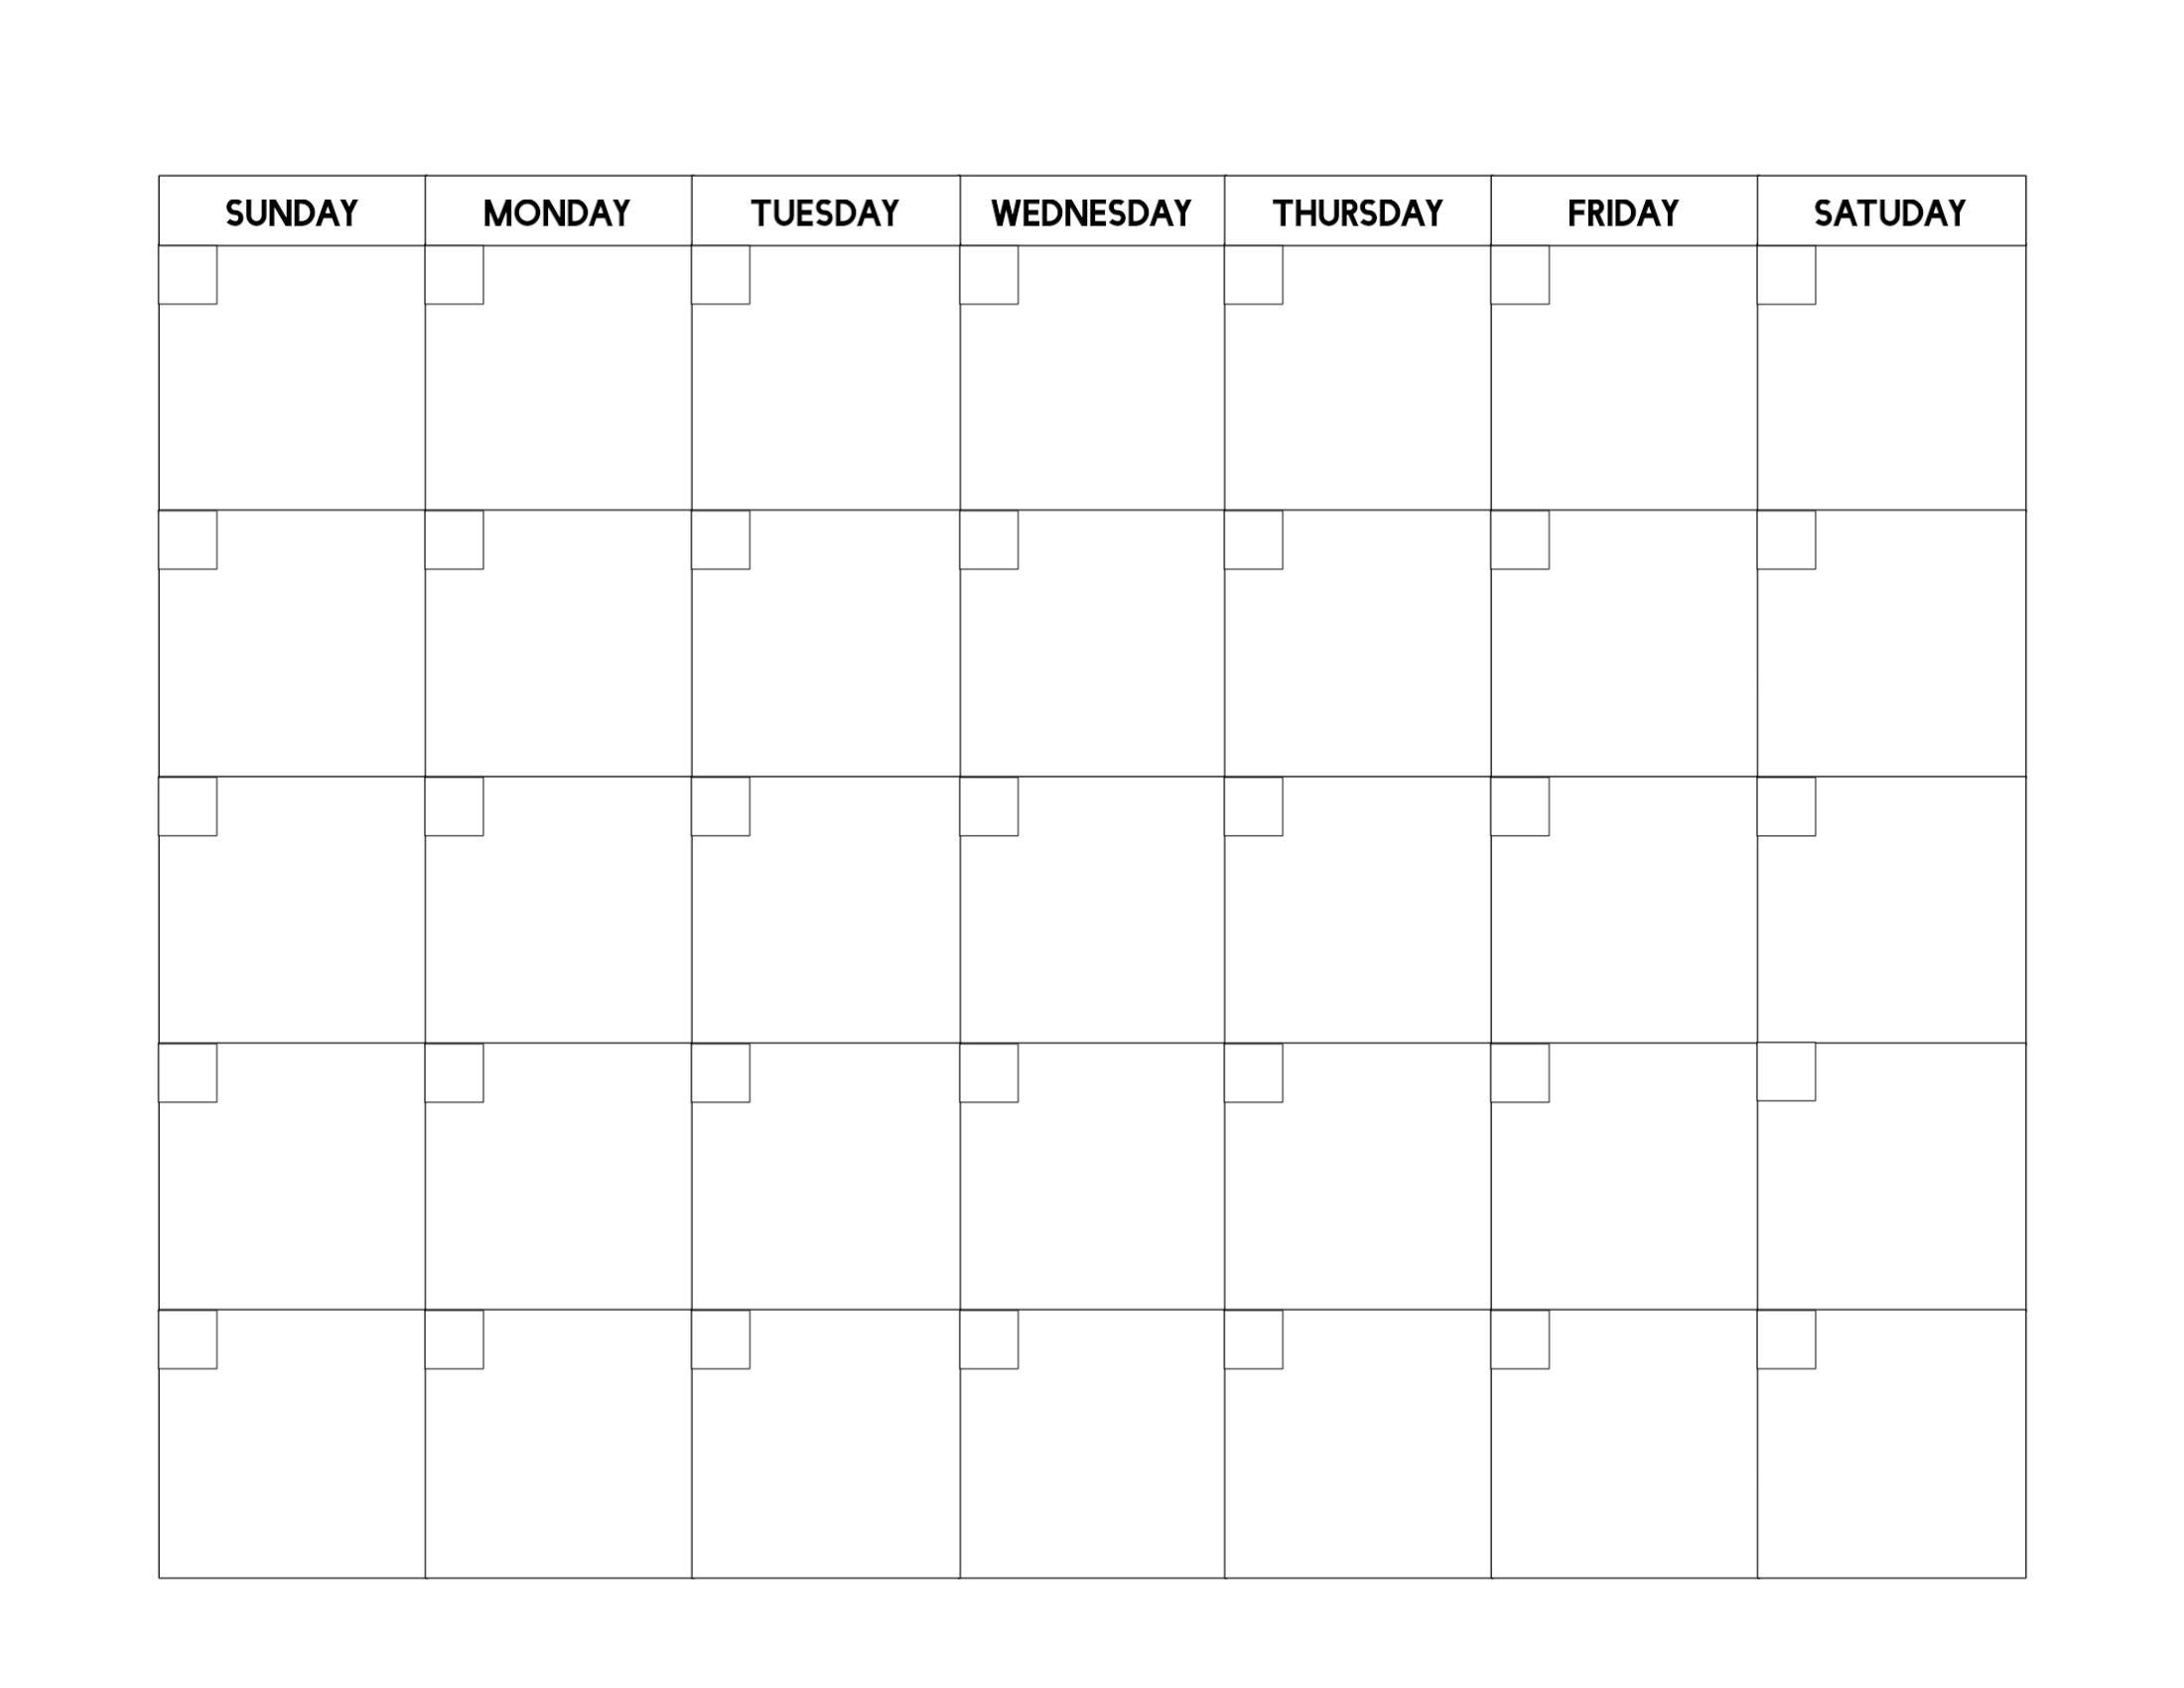 Free Printable Blank Calendar Template - Paper Trail Design-Fre Printable Blank Calander Monthly Pages